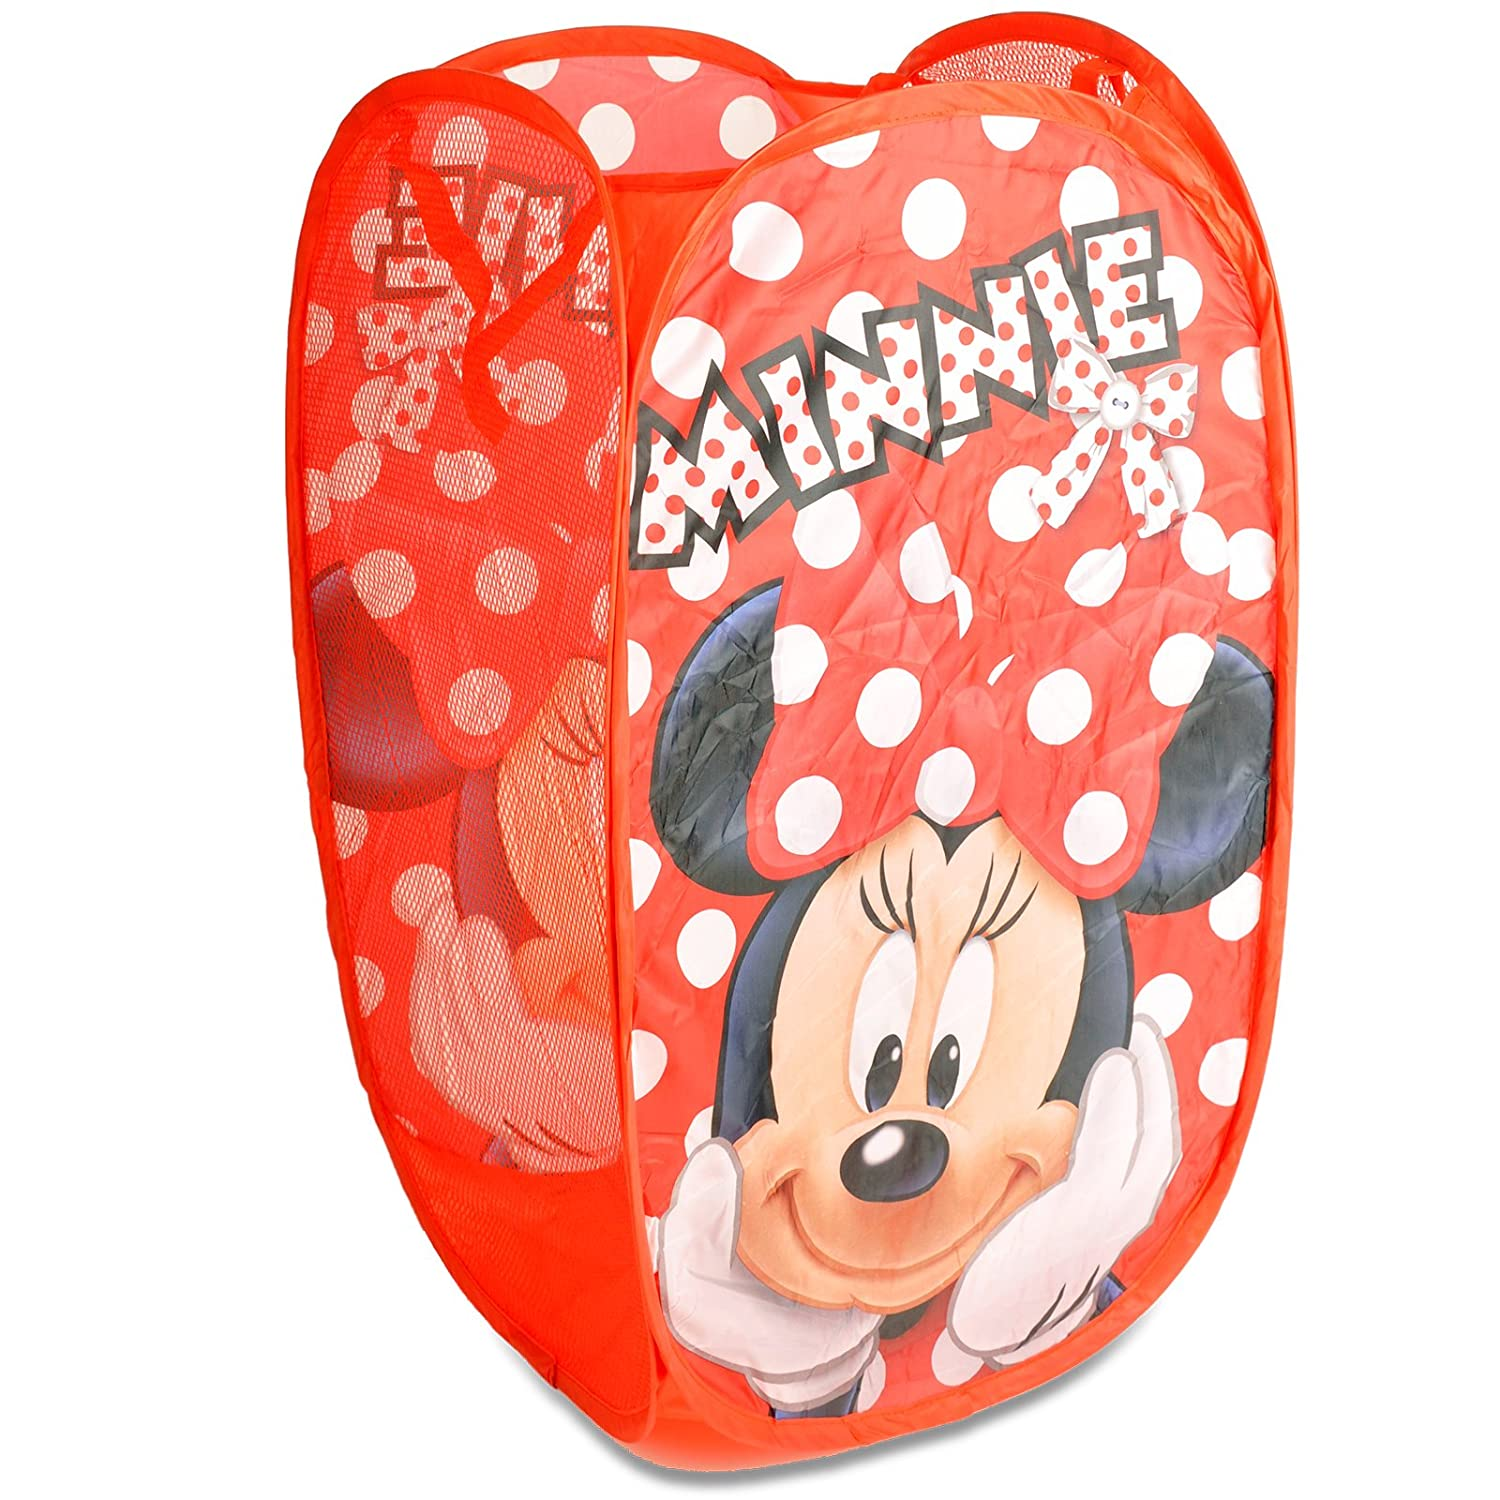 Kids Clothes Hamper Storage Dirty Clothes Basket Kids Pop up Toy Storage / Room Tidy / Laundry Bag / Storage Bag (Minnie Mouse) DSL